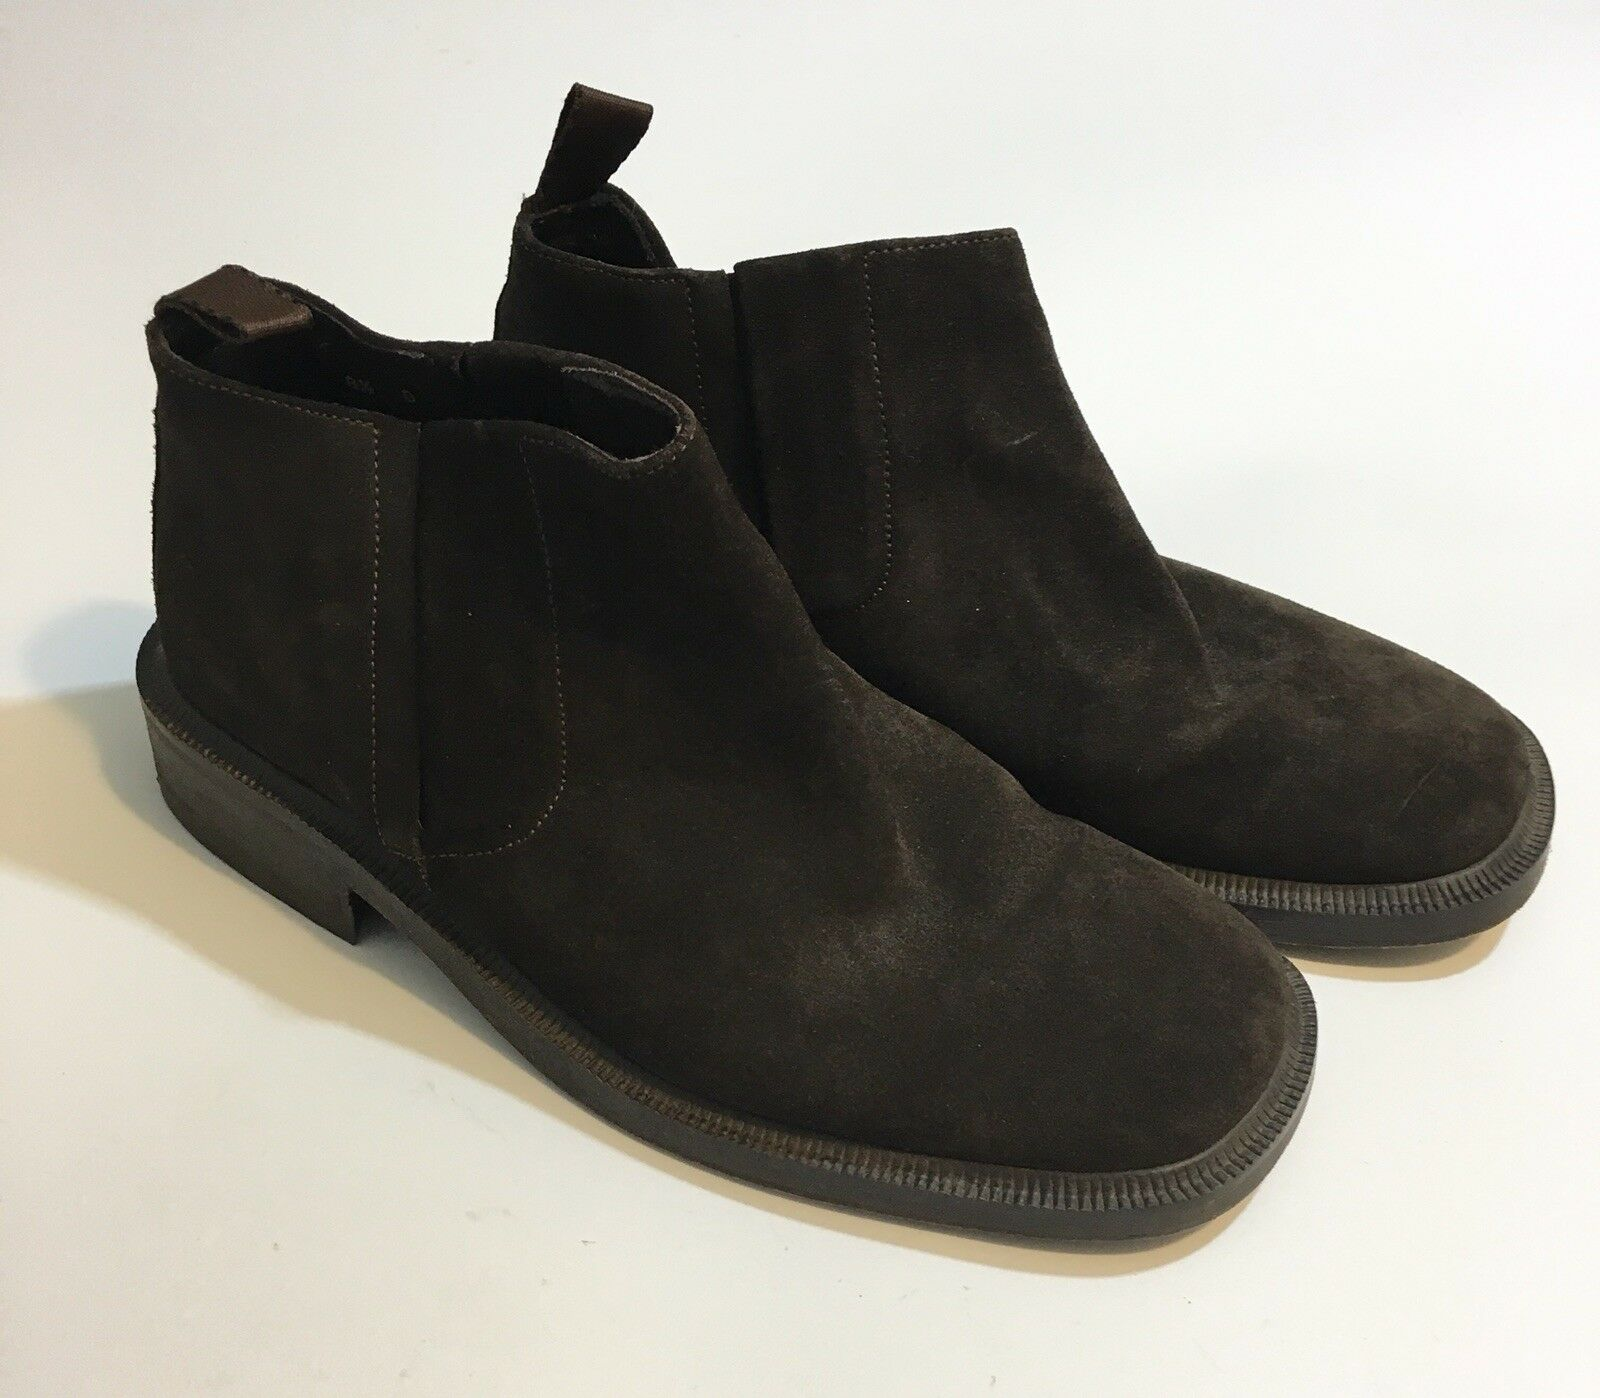 Banana Republic Men's Dark Brown Suede Chukka Ankle Boots Size 8.5 D Italy